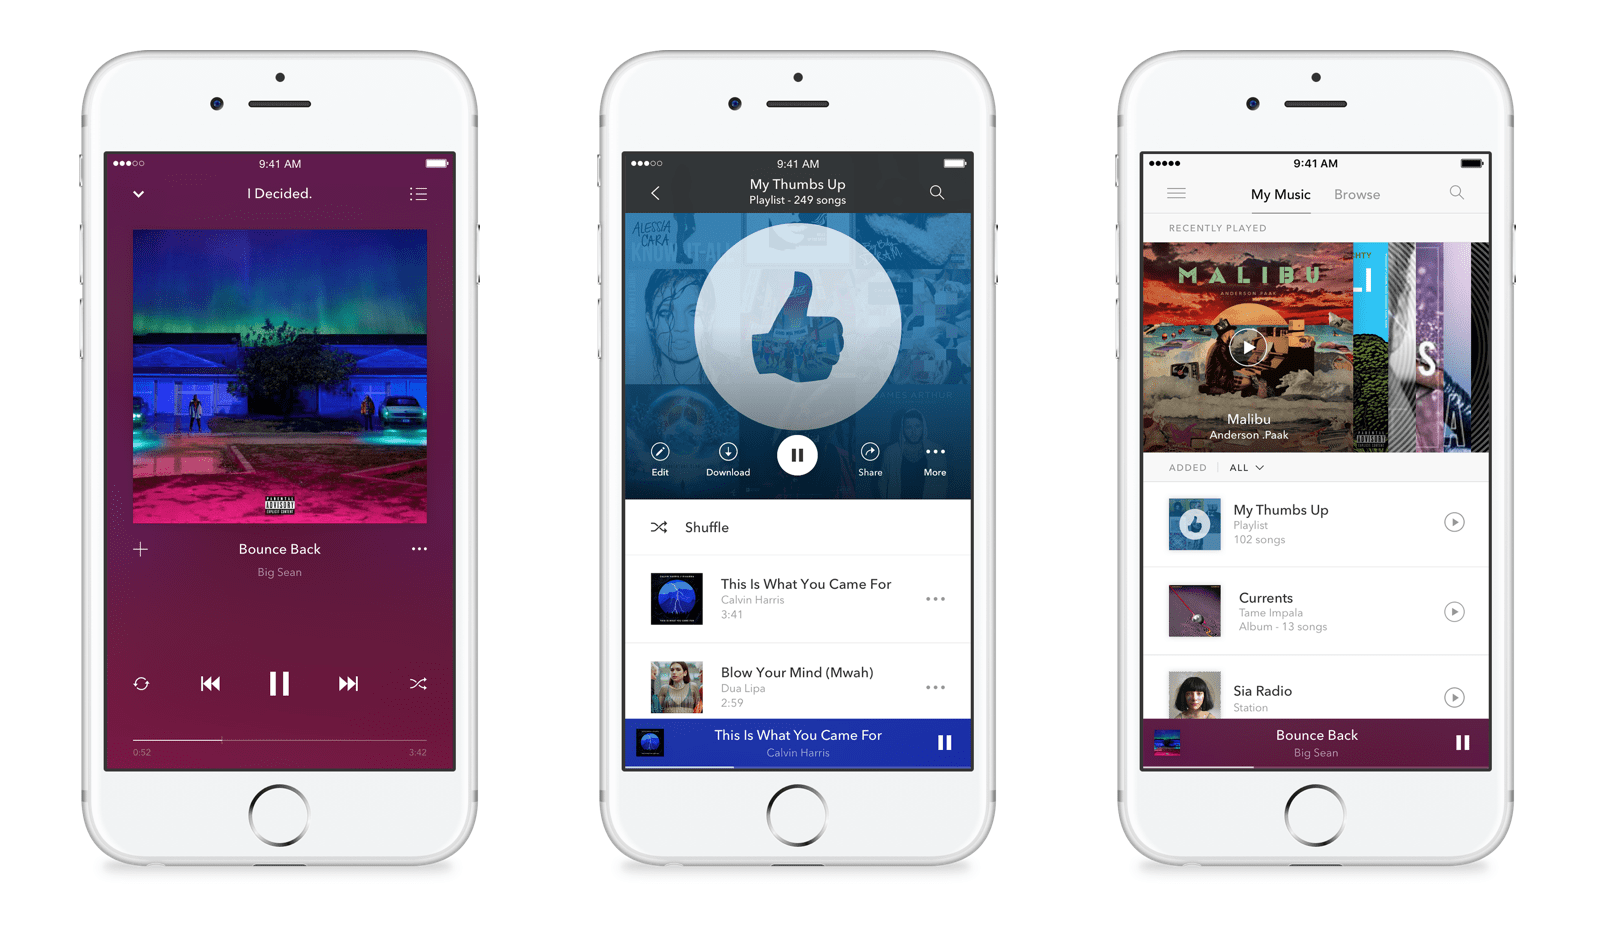 Pandora\'s new on-demand music service is beautiful, but is that enough?